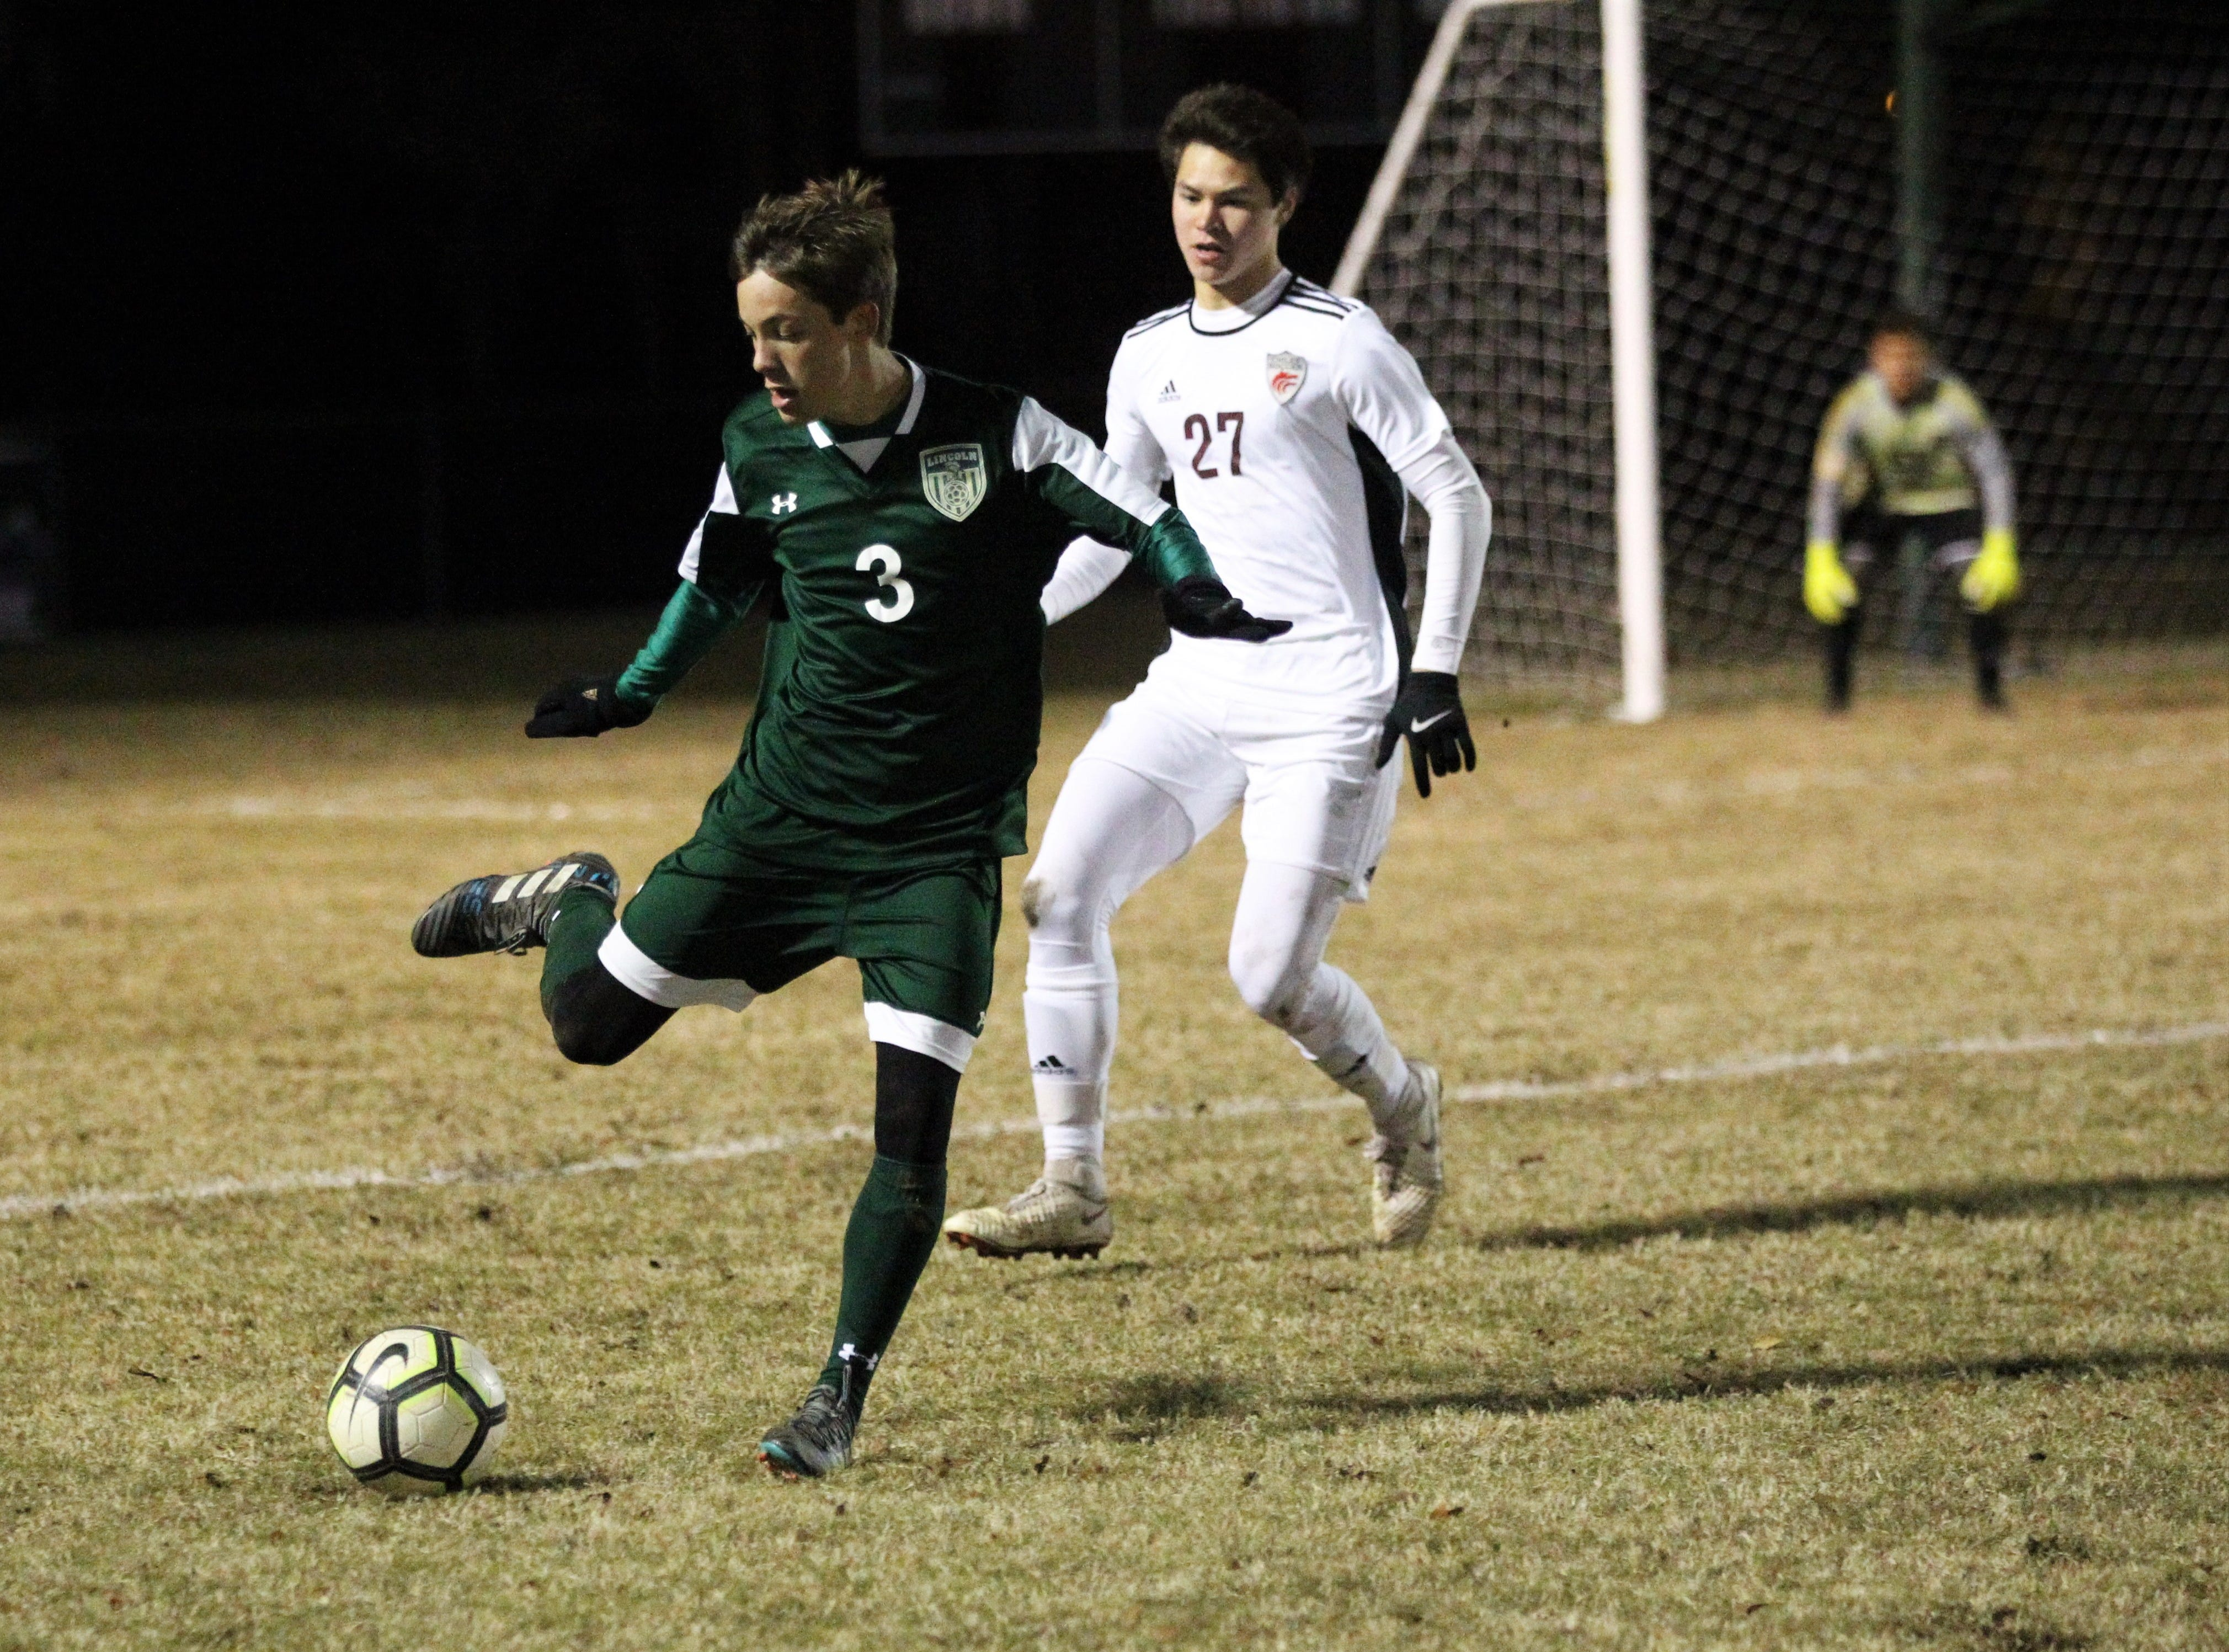 Lincoln's Lukas Reiding makes a pass outside the box as Chiles' boys soccer team beat Lincoln 1-0 in a District 2-4A semifinal on Jan. 30, 2019.